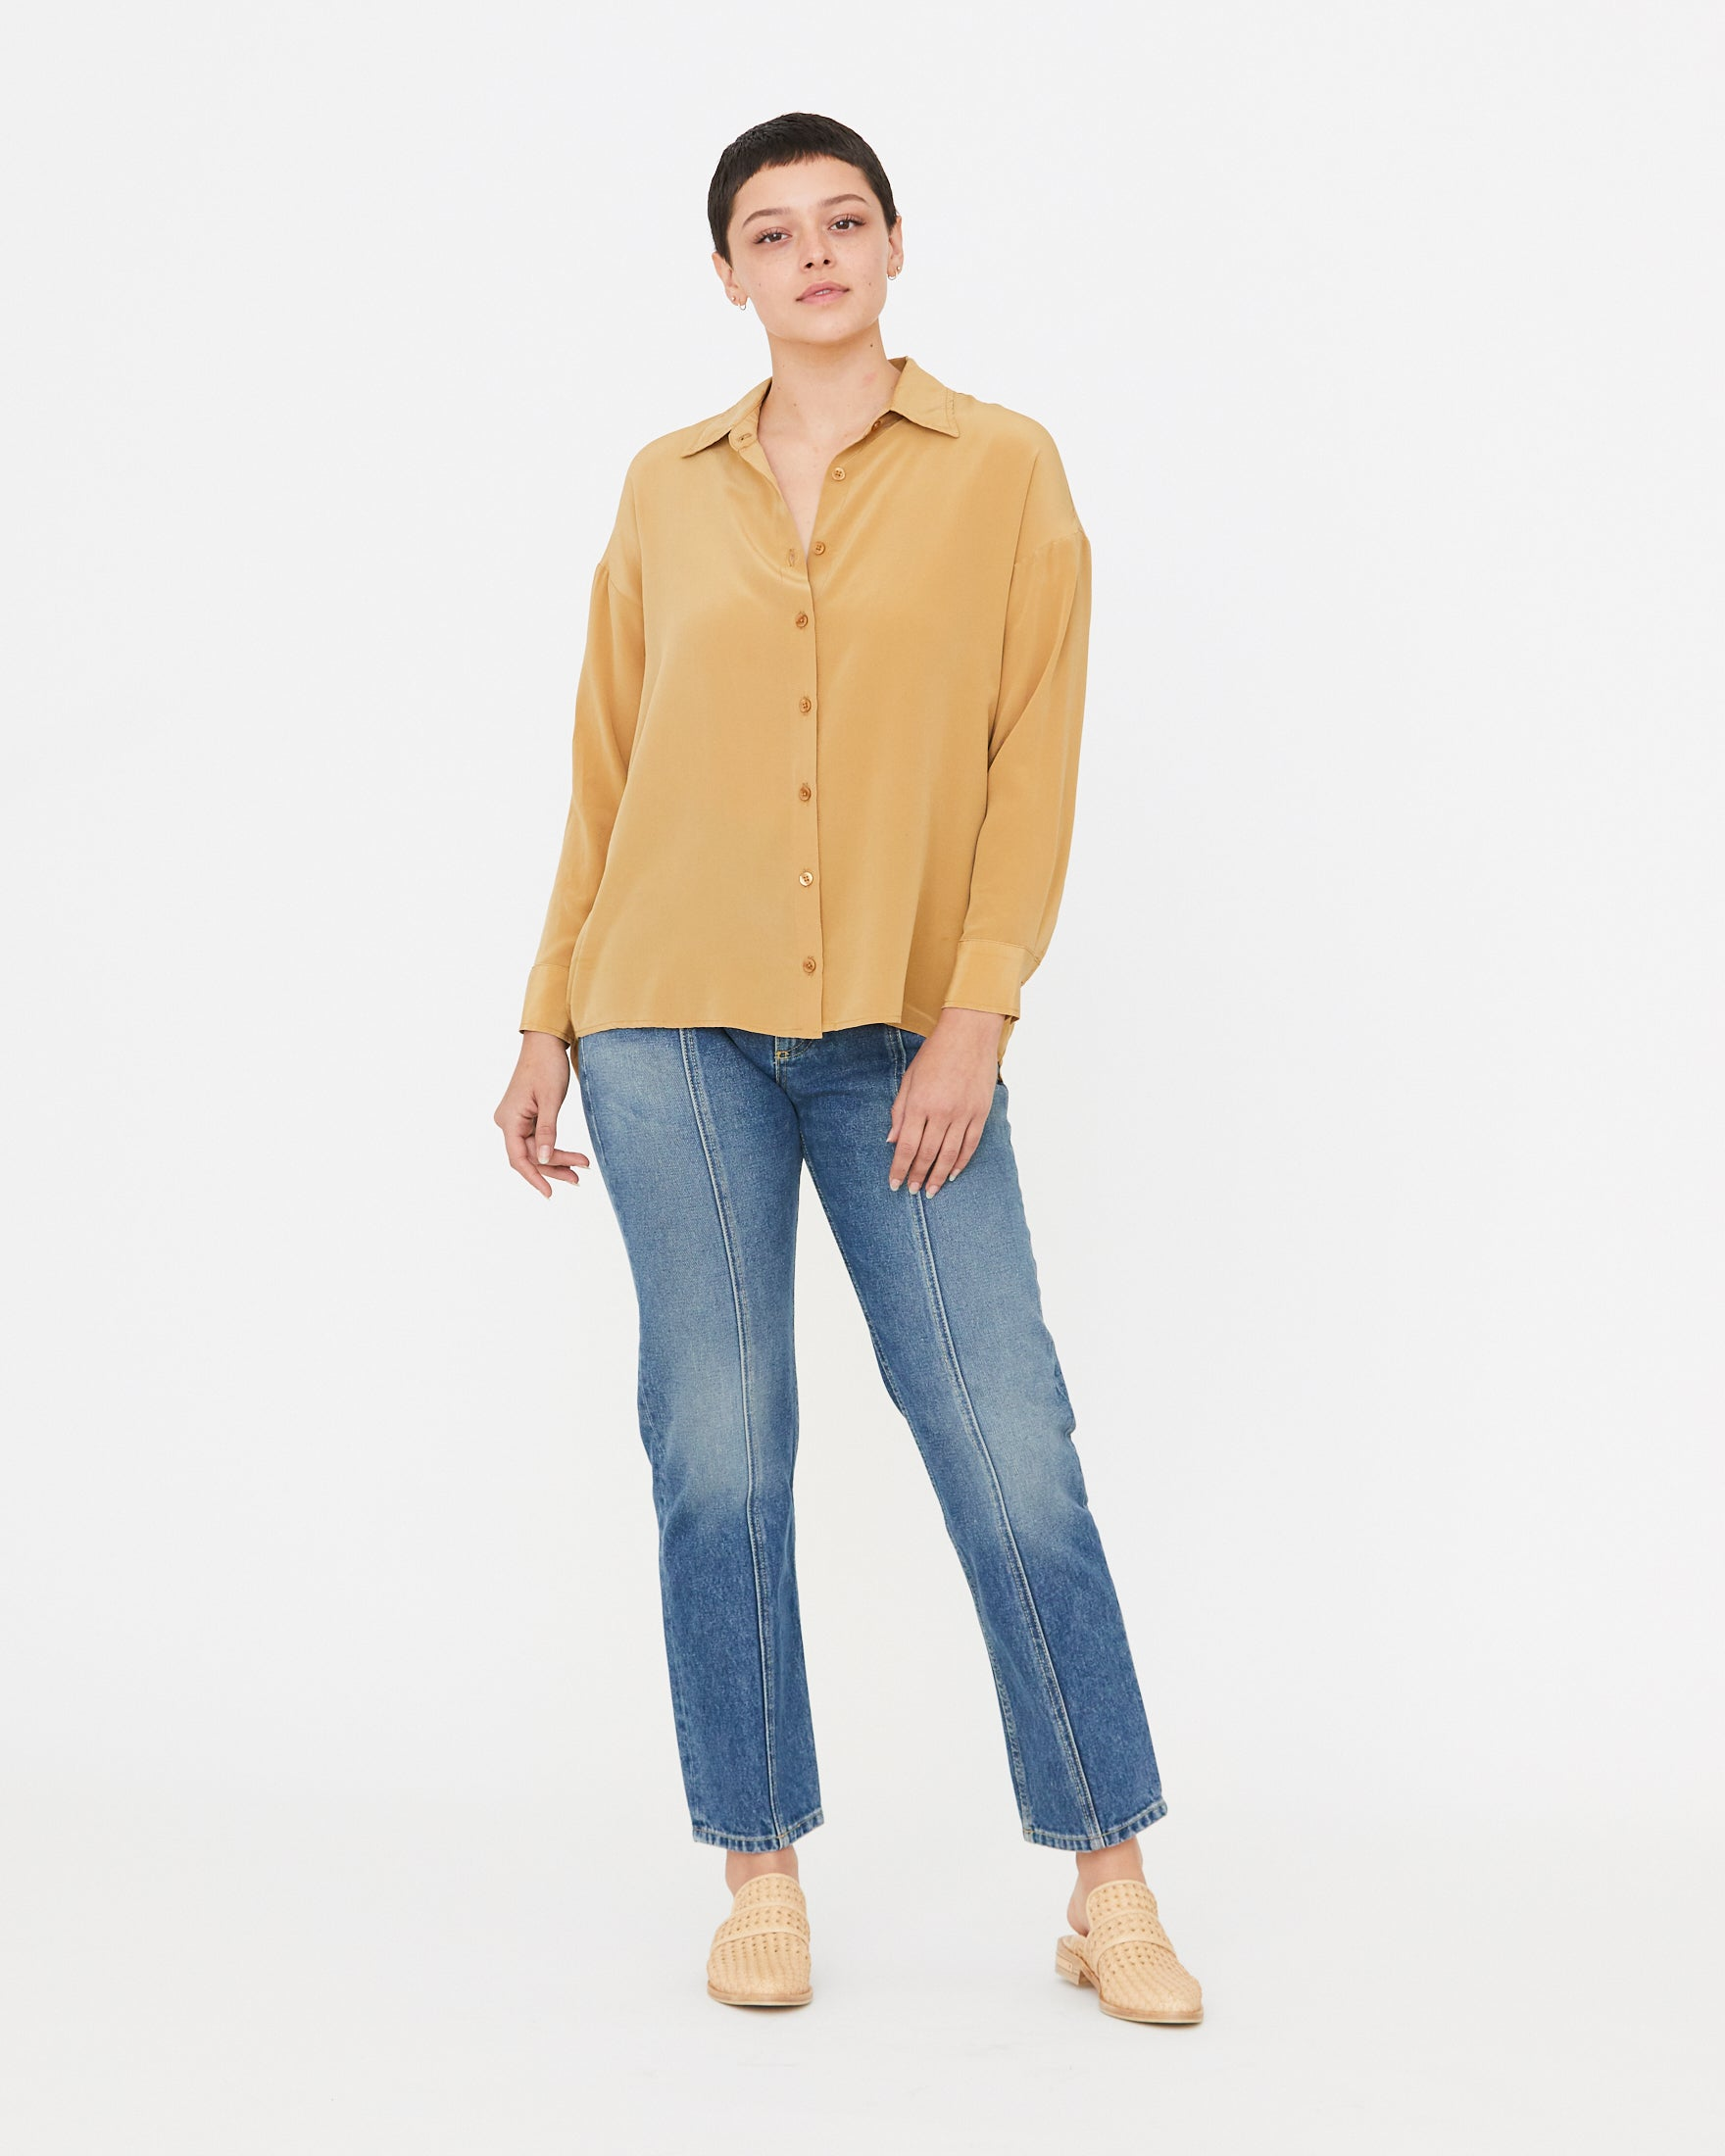 CAMBRIA SILK BUTTON DOWN - GOLDEN